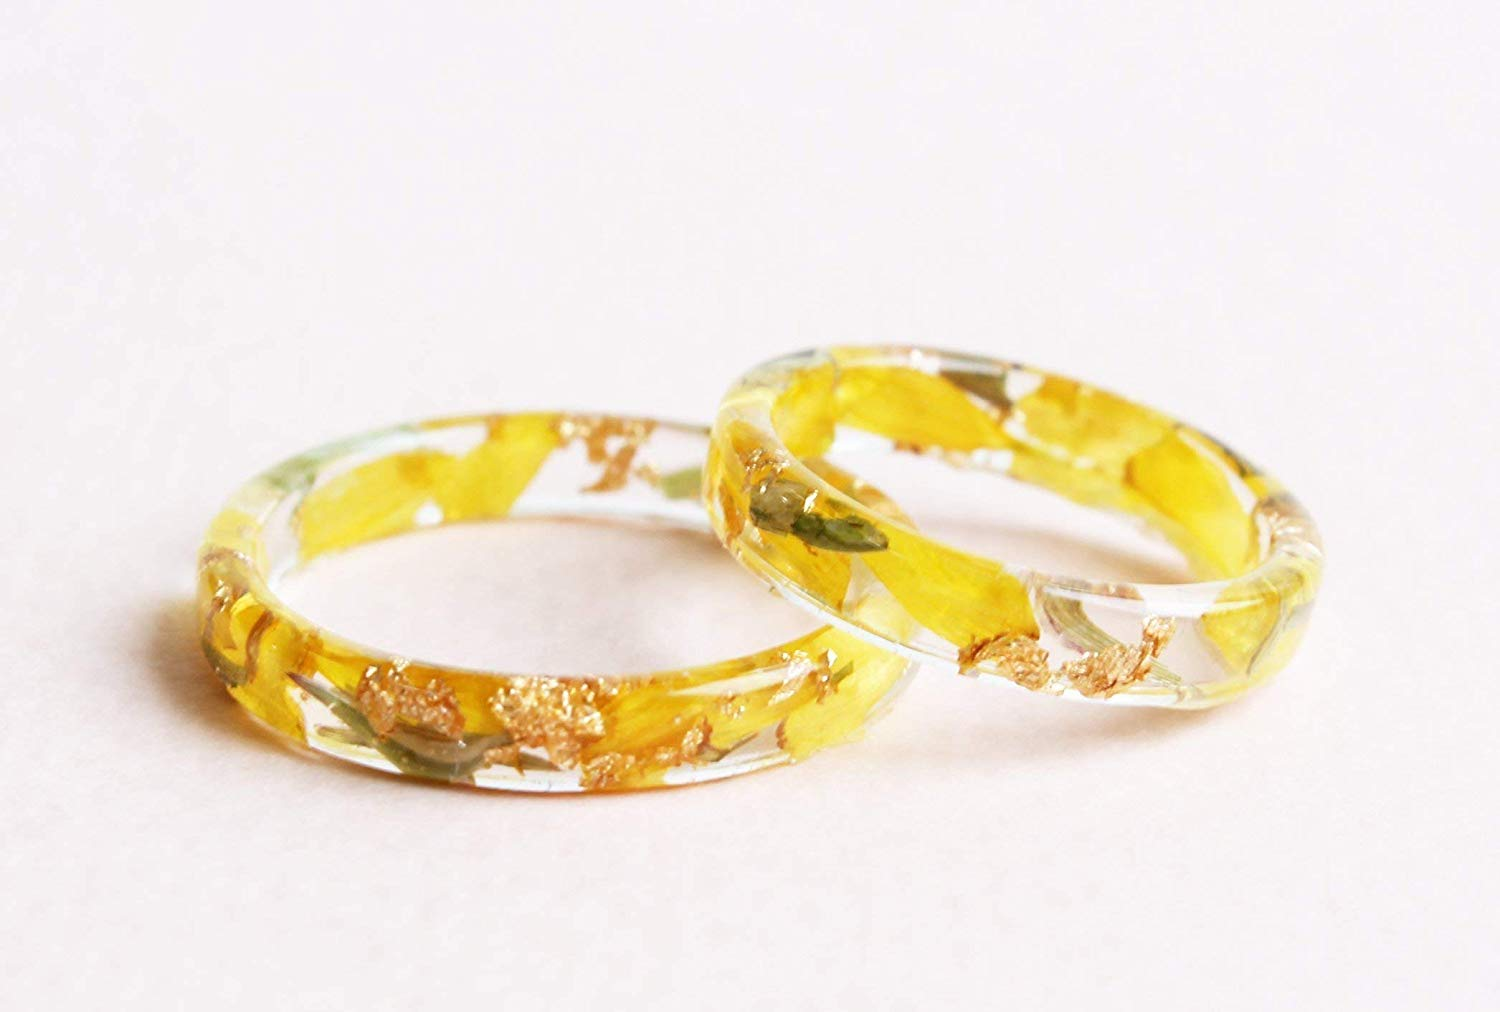 Nature Resin Ring Band with Natural Pressed Golden-Daisy Petals, Green Leaves and Gold Flakes